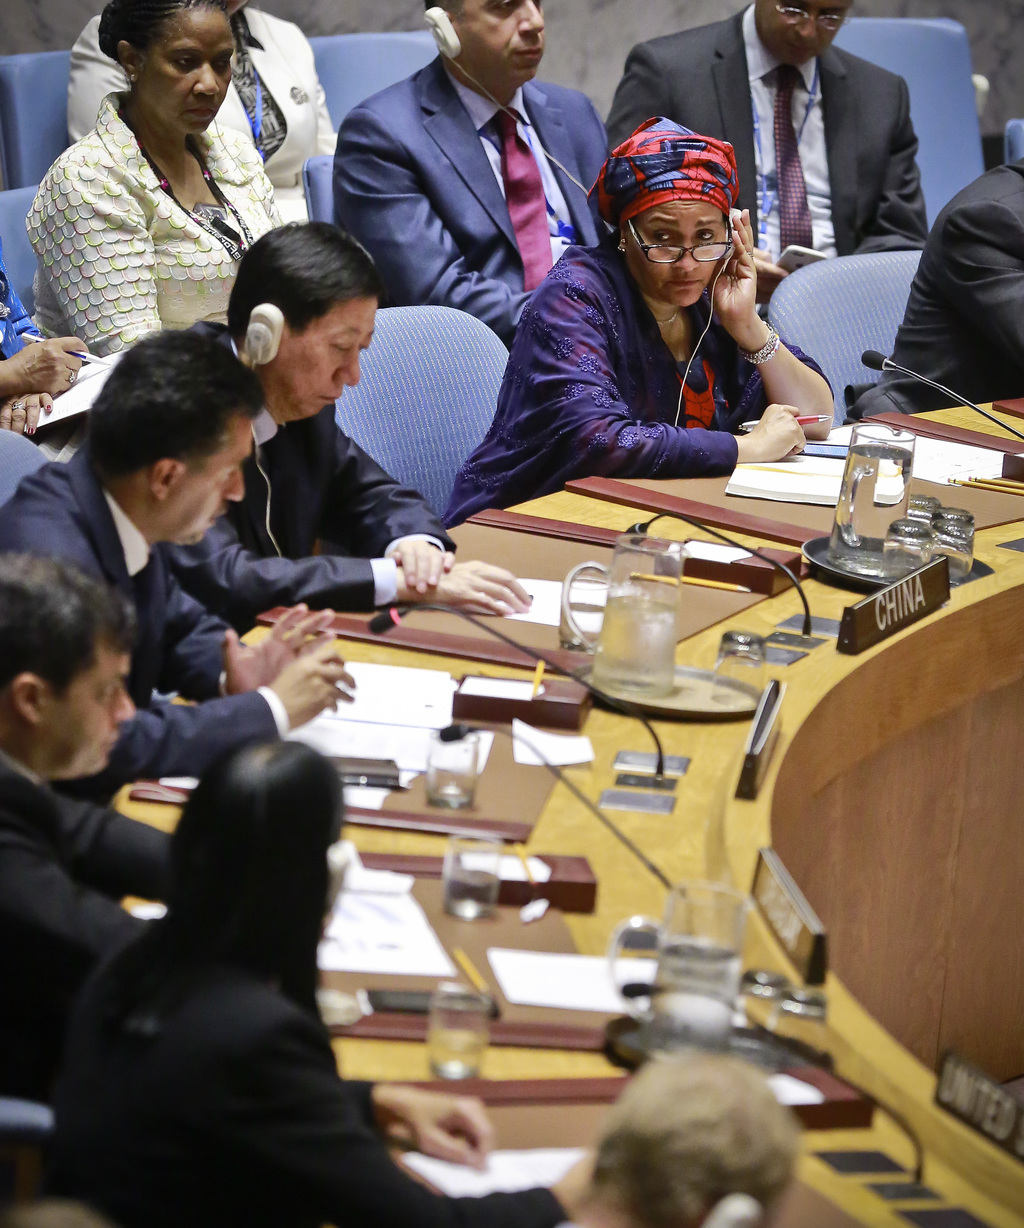 UN: Sexual violence marks conflicts in Nigeri... | Taiwan News